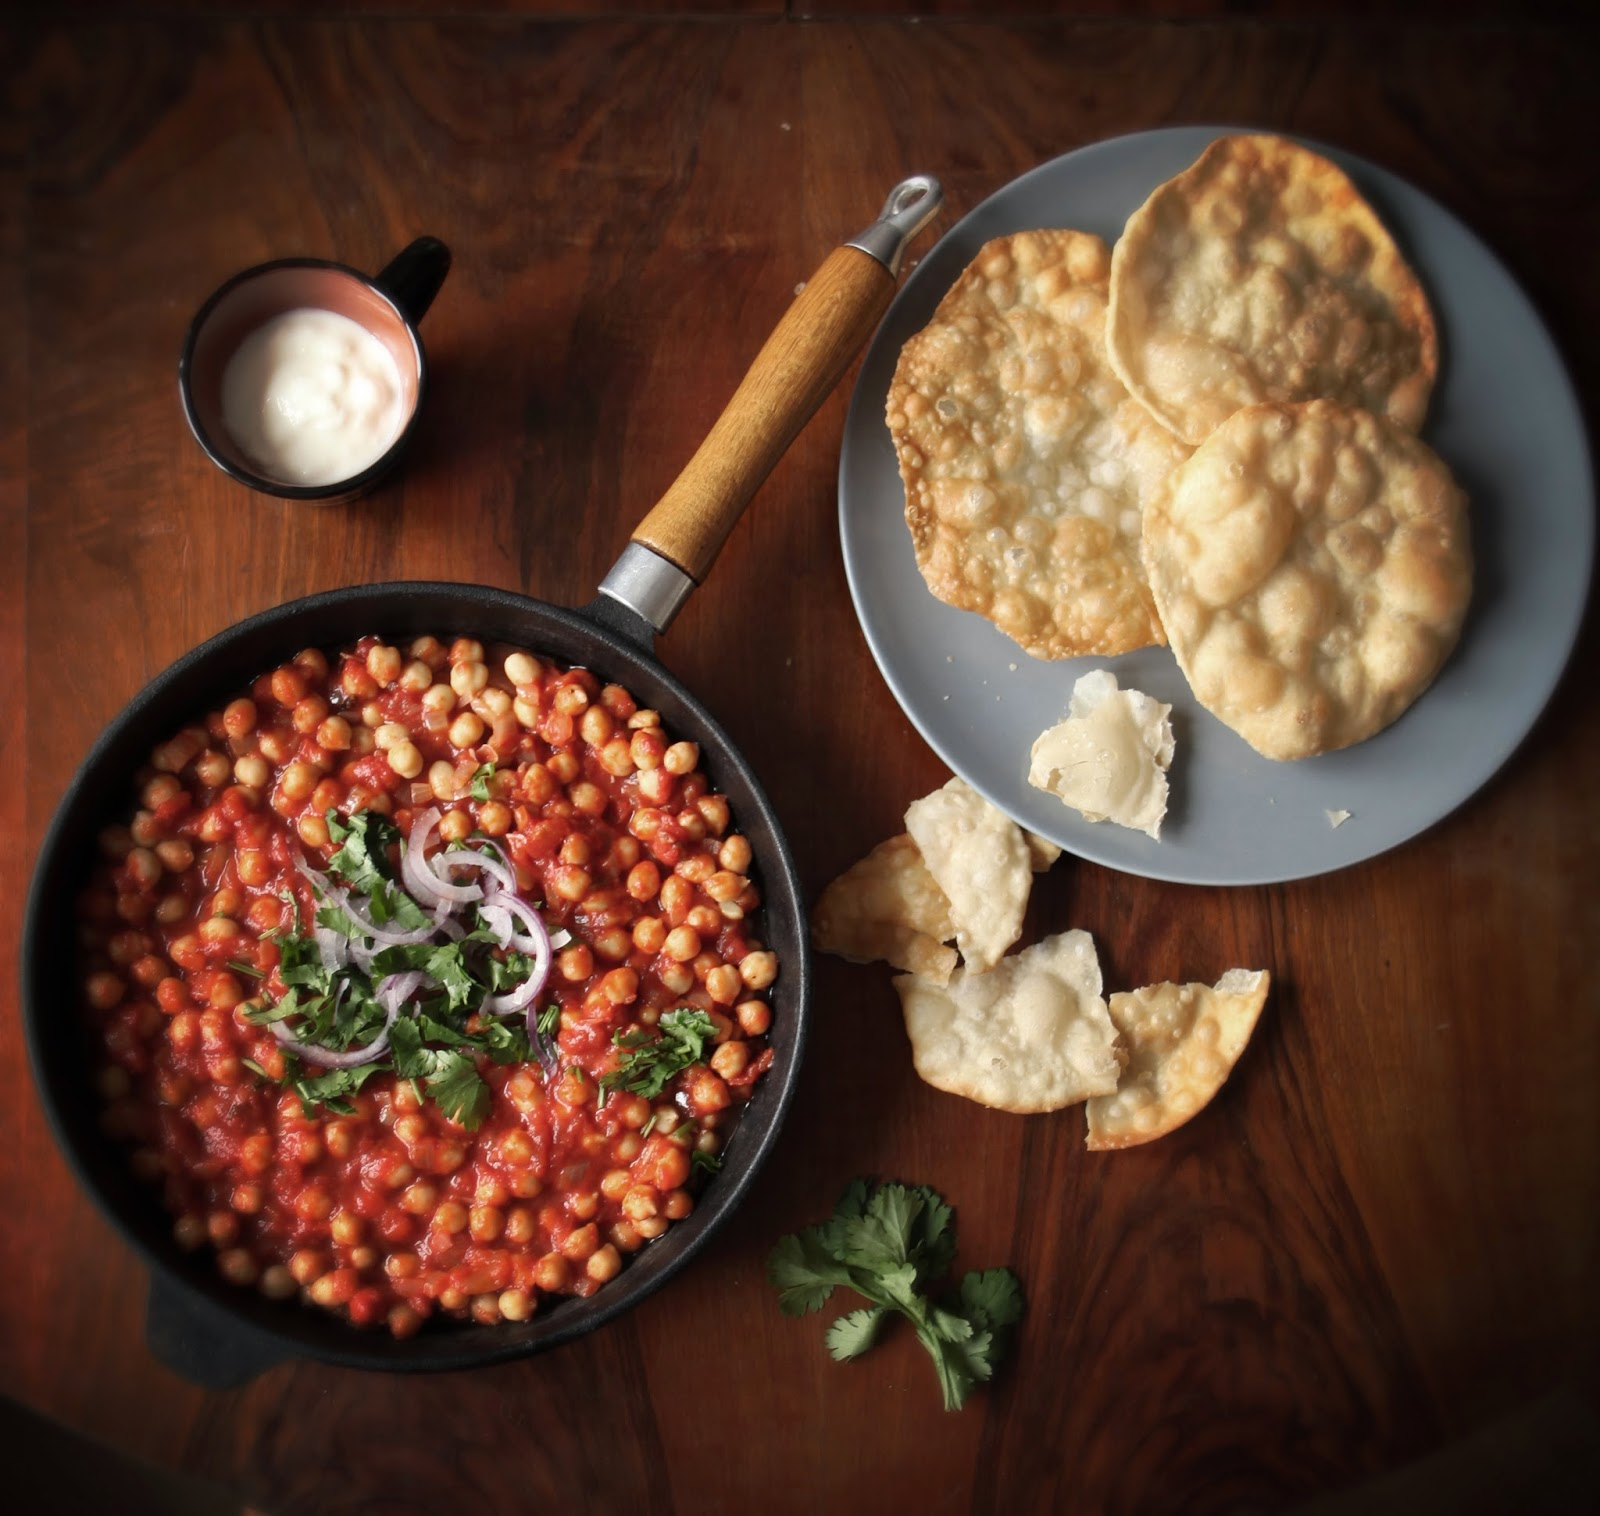 http://our-favorite-apple-pie.blogspot.com/2014/03/chole-bhature-czyli-wegetarianskie.html